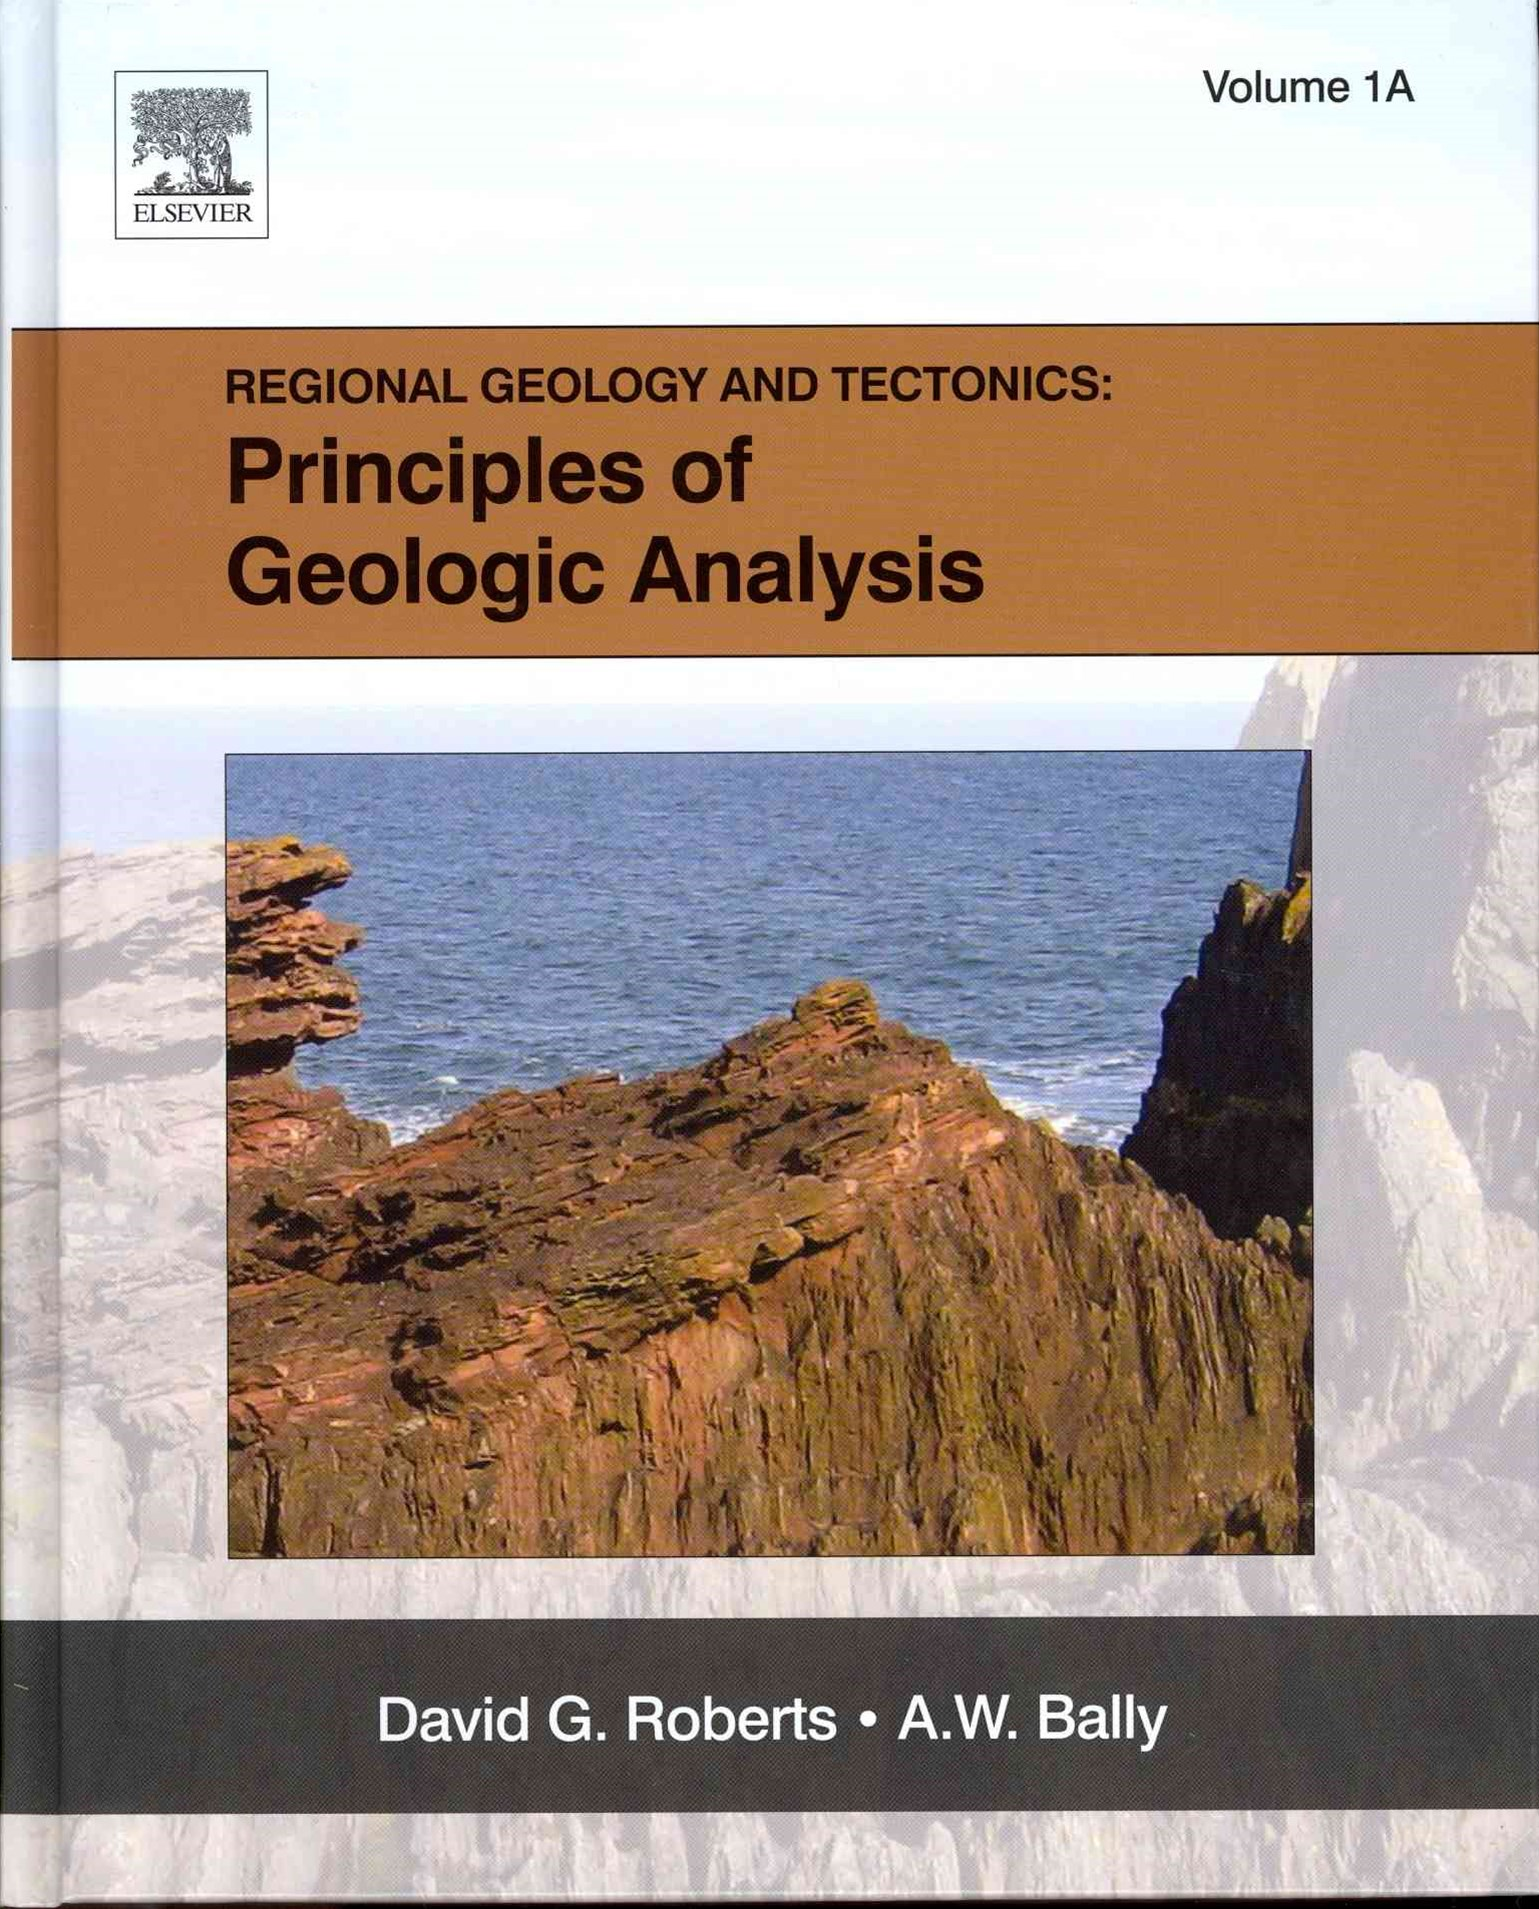 Regional Geology and Tectonics